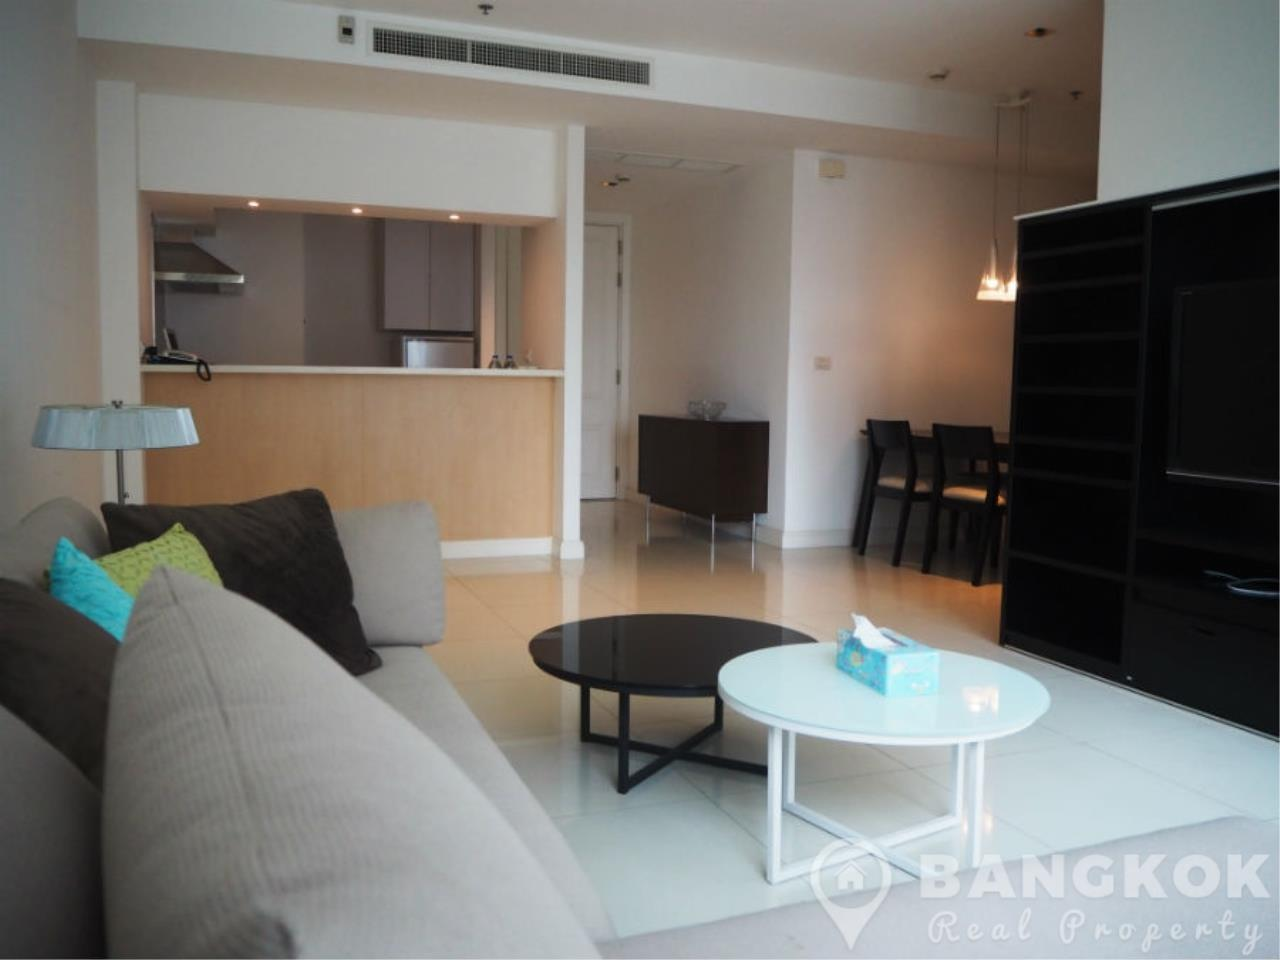 Bangkok Real Property Agency's Athenee Residence | Spacious Modern 2 Bed 2 Bath with Great City Views 5